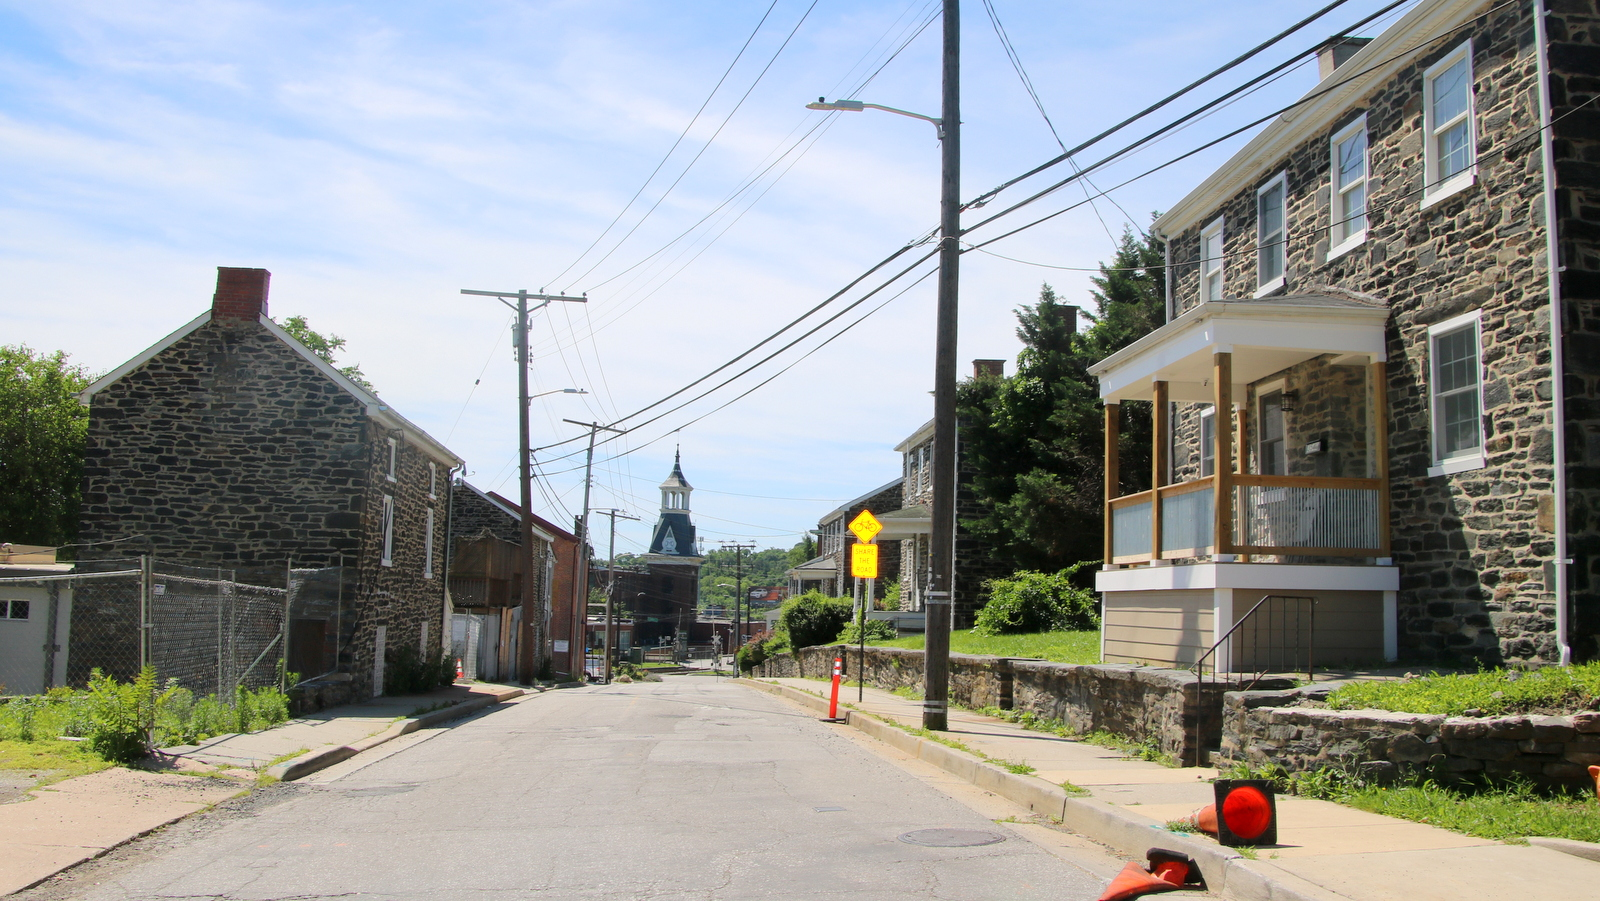 The view today on Clipper rRoad, with the stone houses at left, other stone buildings at right and the mill buildings visible at the bottom of the hill. (Fern Shen)